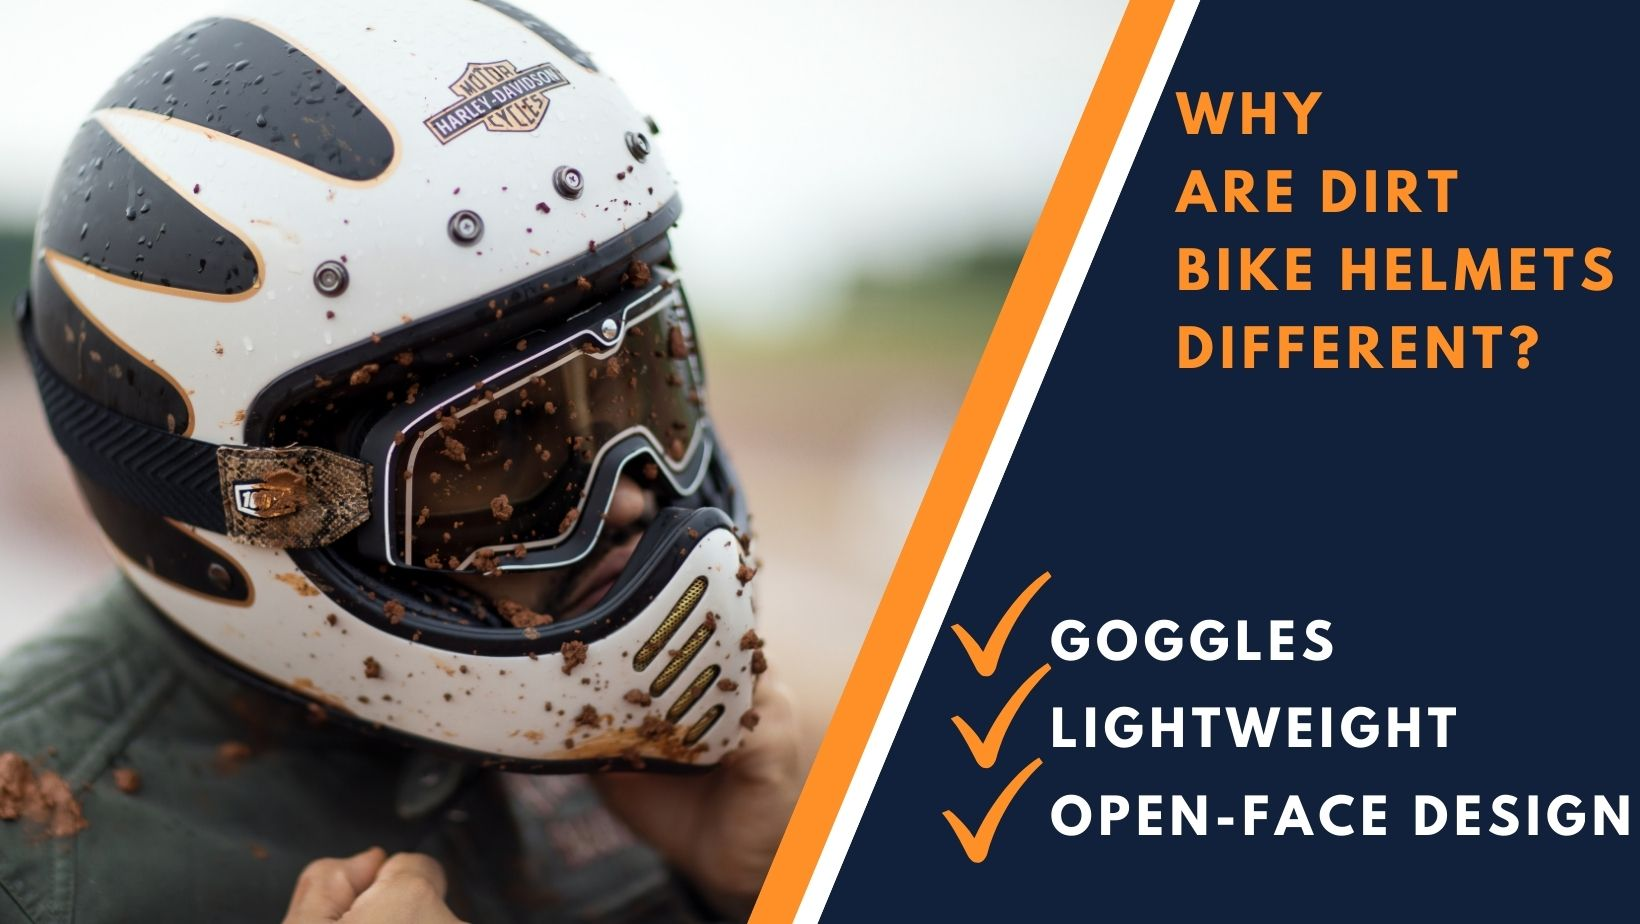 Why are Dirt Bike Helmets Different